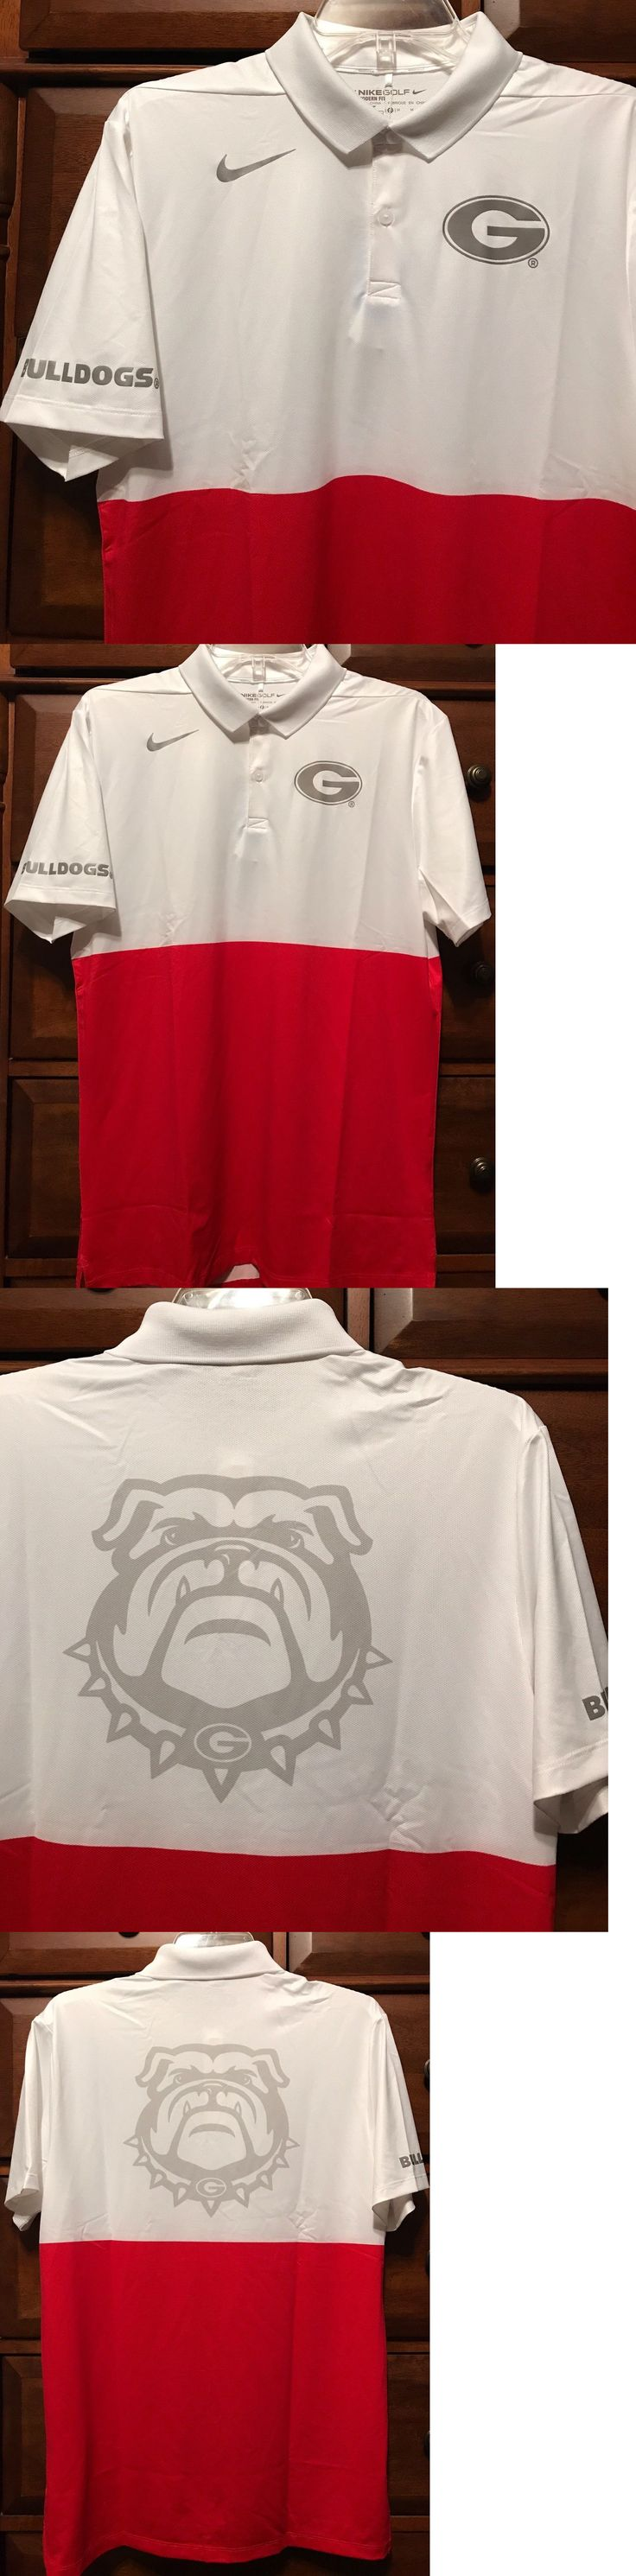 College-NCAA 24541: New $85 Georgia Bulldogs Men S Nike Golf Polo Dress Shirt Dri-Fit White Red -> BUY IT NOW ONLY: $34.99 on eBay!